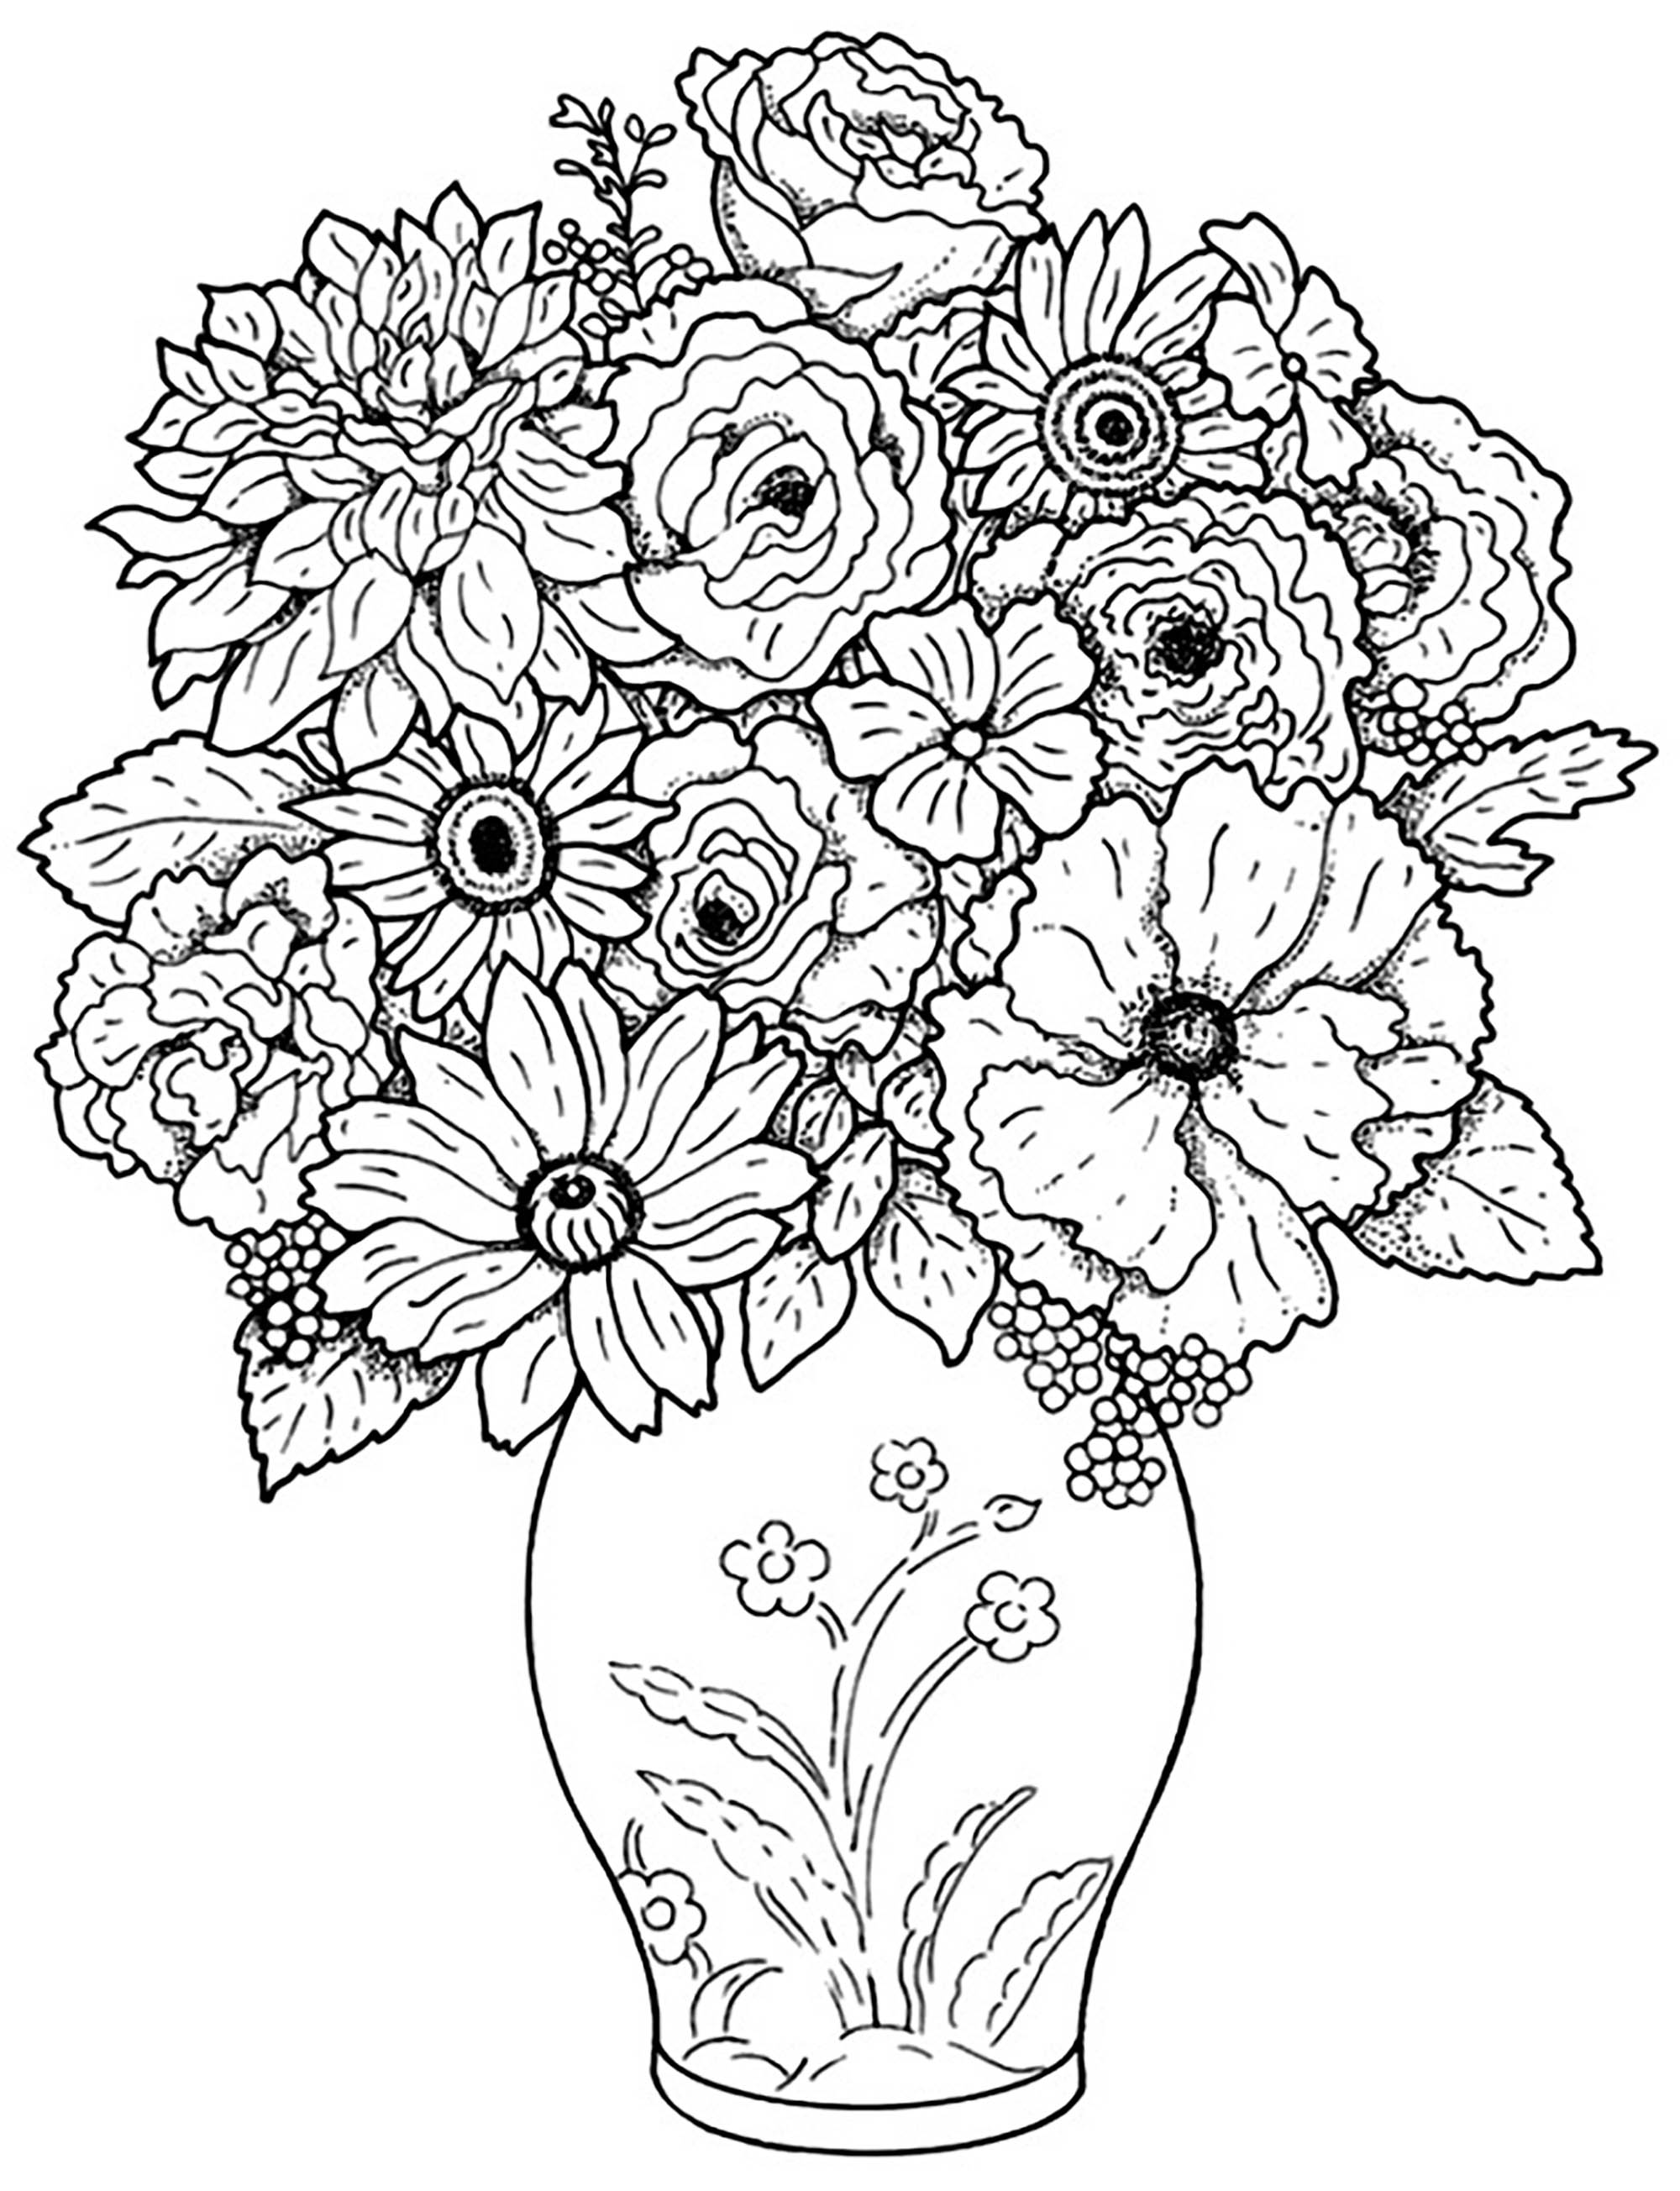 flower printable coloring sheets dahlia flower coloring pages download and print dahlia printable flower sheets coloring